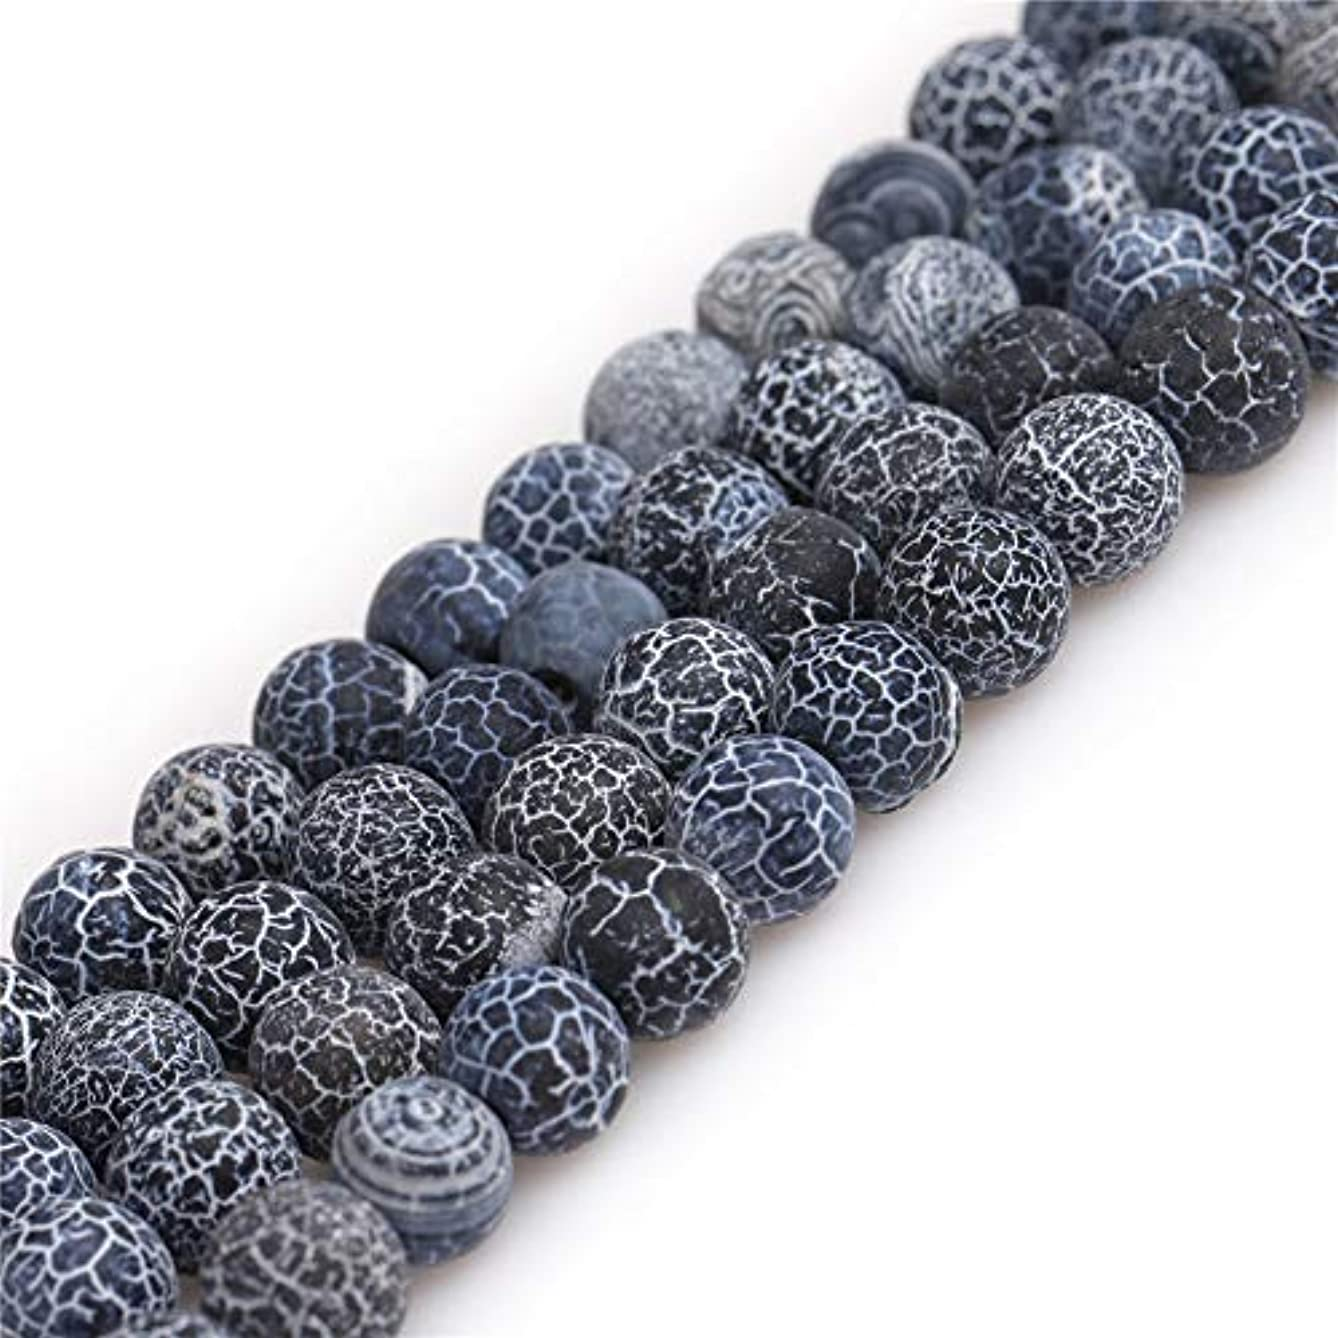 Black Agate Beads for Jewelry Making Natural Gemstone Semi Precious 8mm Round Frosted Matte 15